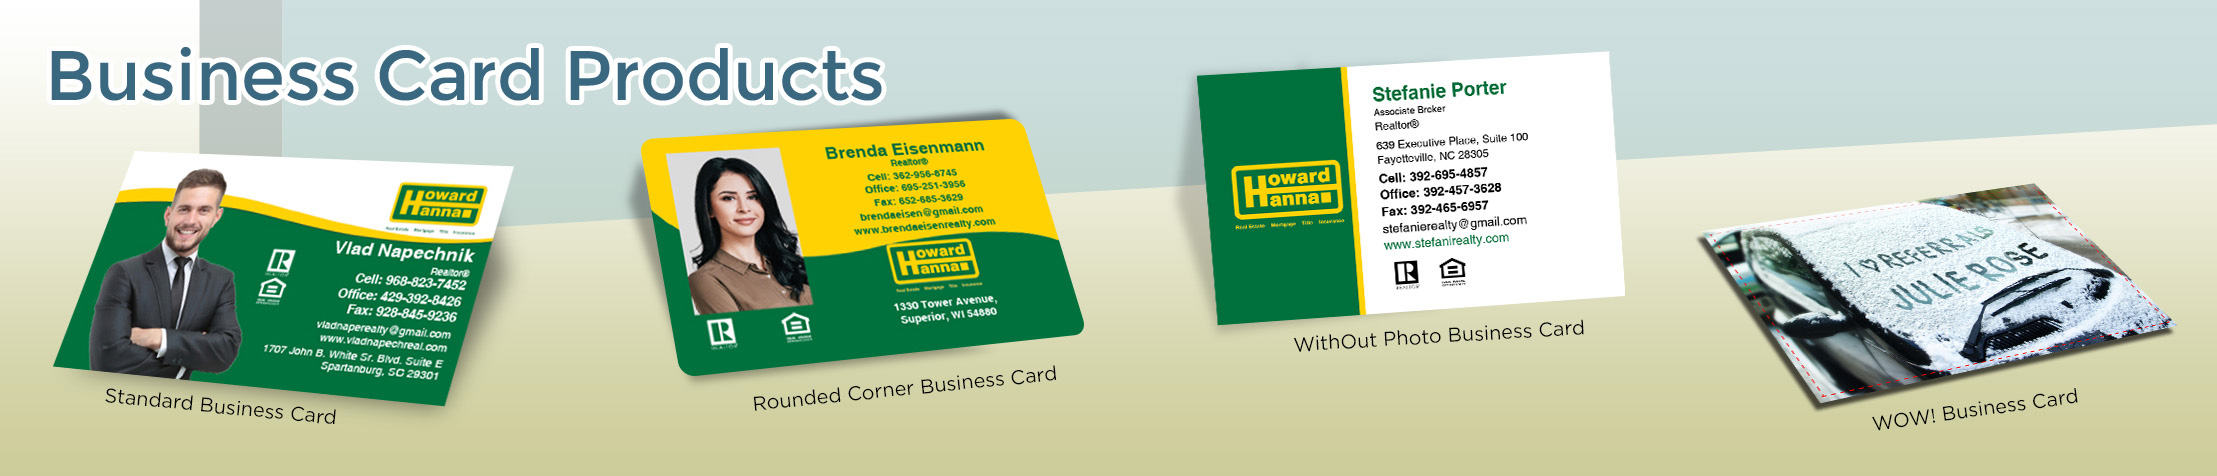 Howard Hanna Real Estate Business Card Products - Howard Hanna  - Unique, Custom Business Cards Printed on Quality Stock with Creative Designs for Realtors | BestPrintBuy.com